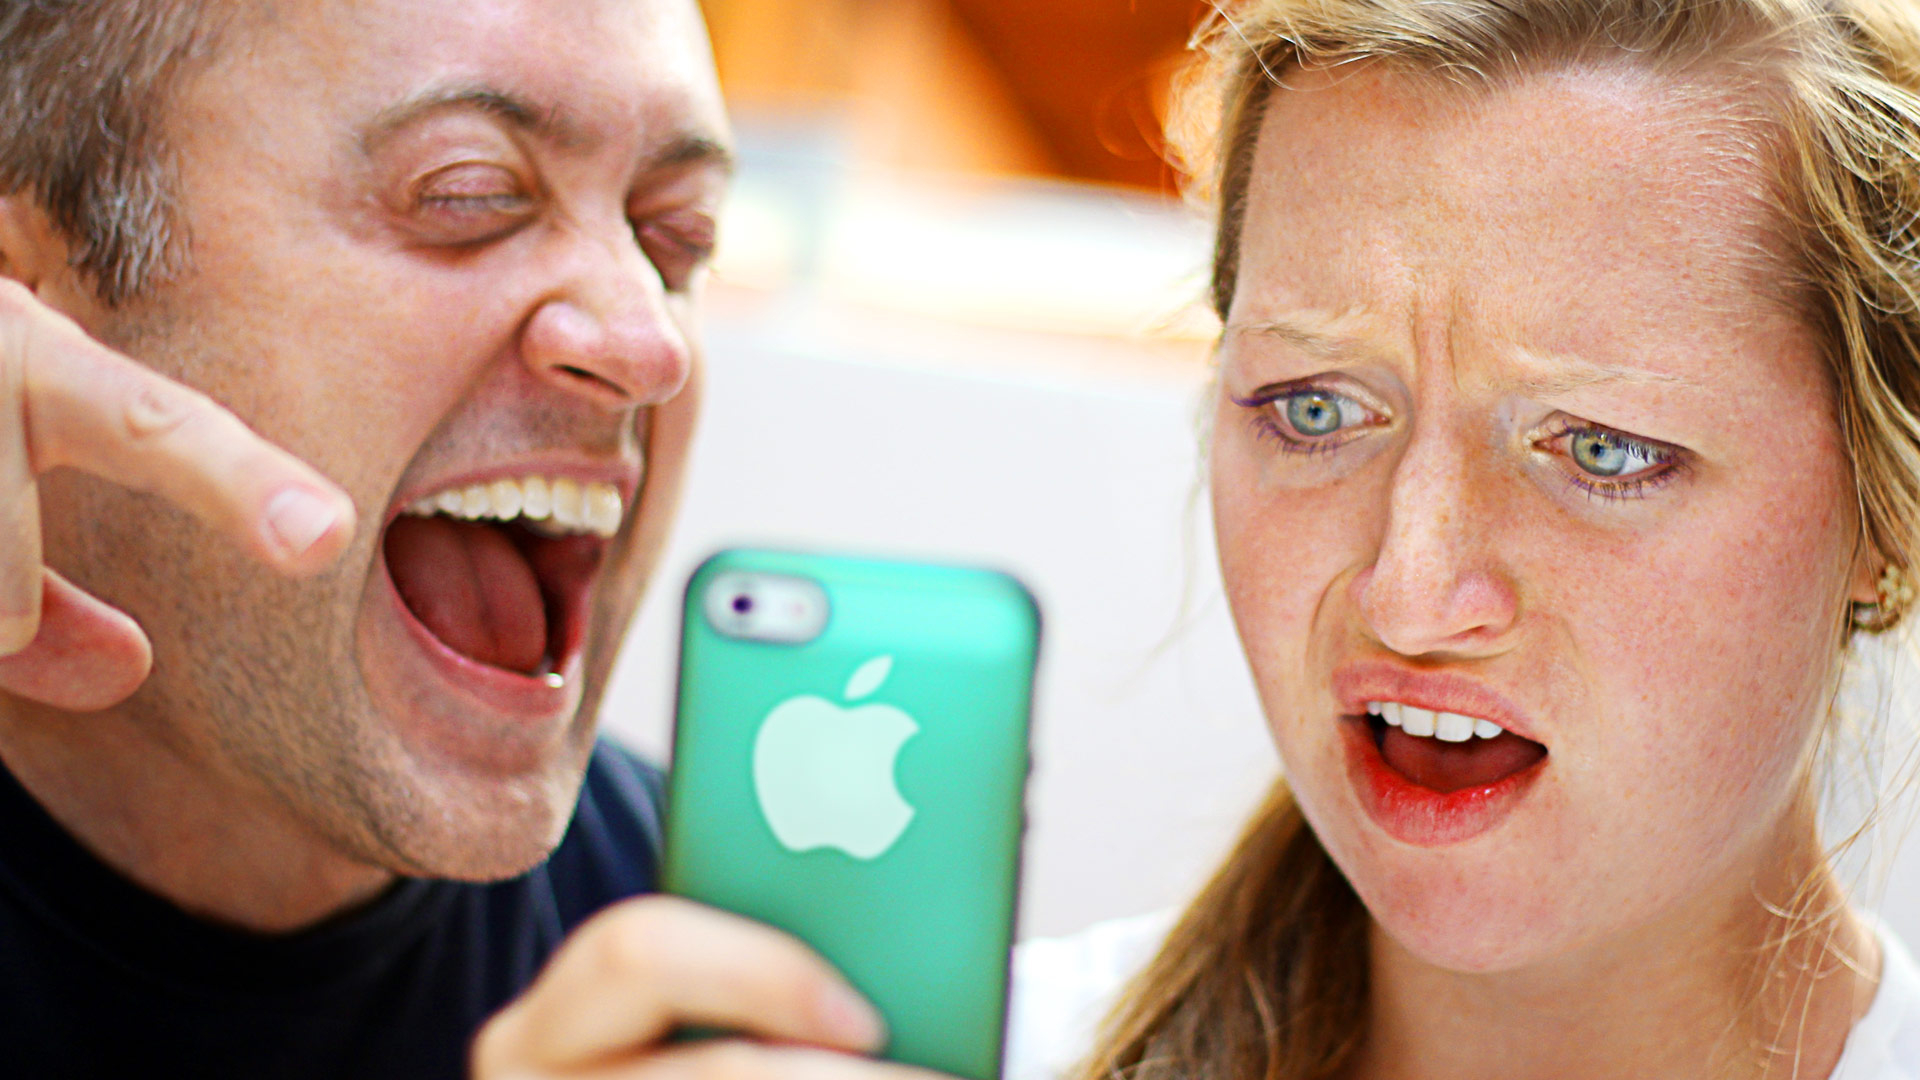 5 Harmless iPhone Pranks To Play On Your Friends